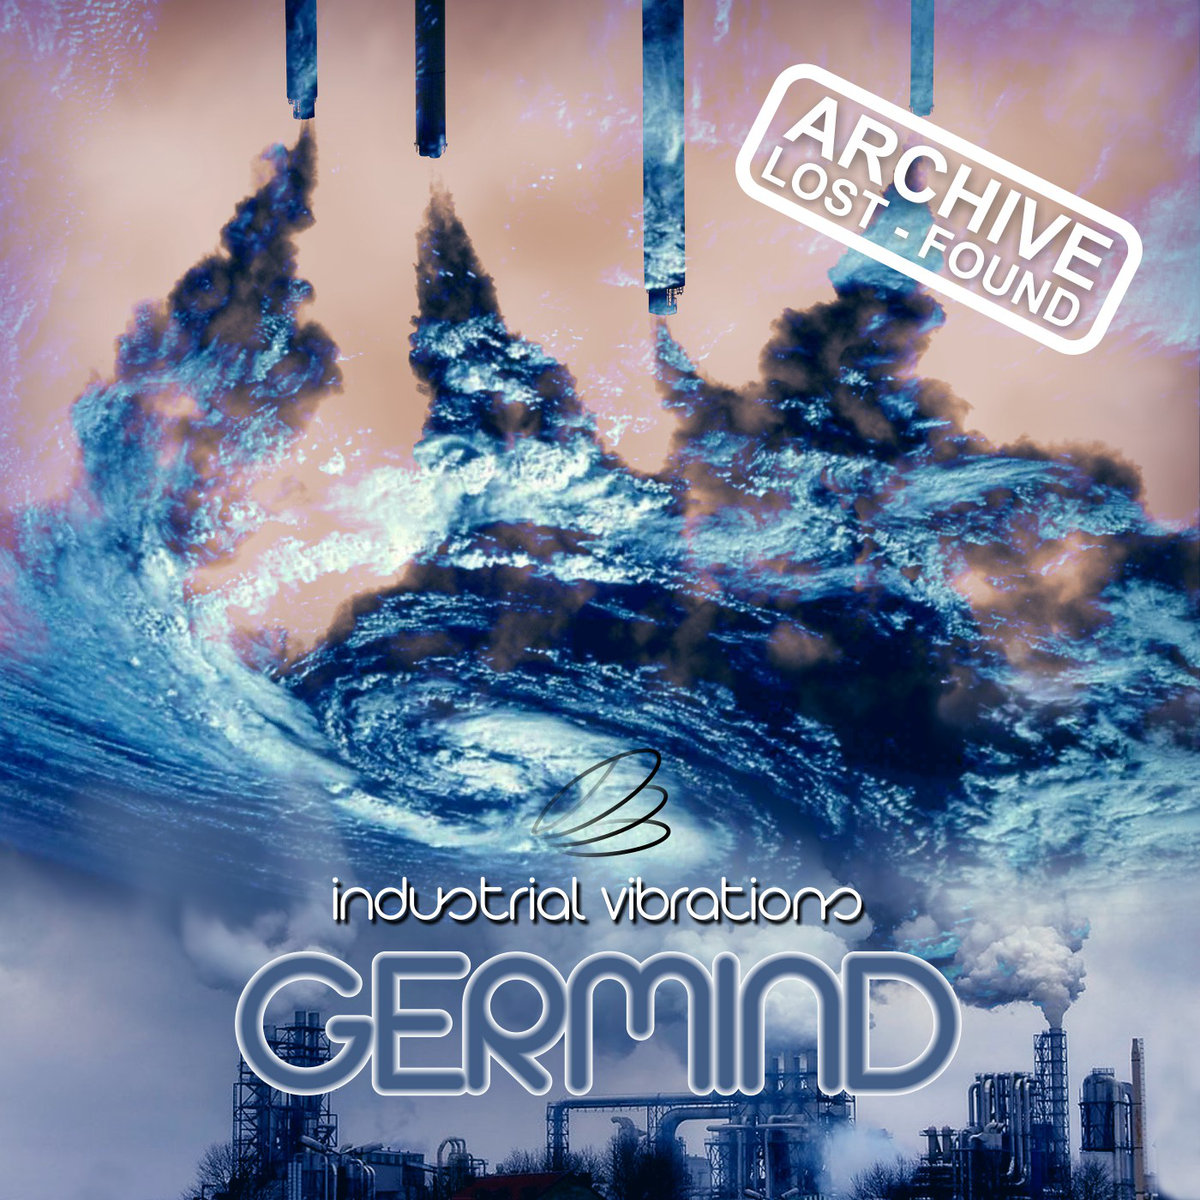 Germind - Industrial Vibrations @ 'Industrial Vibrations' album (ambient, chillout)